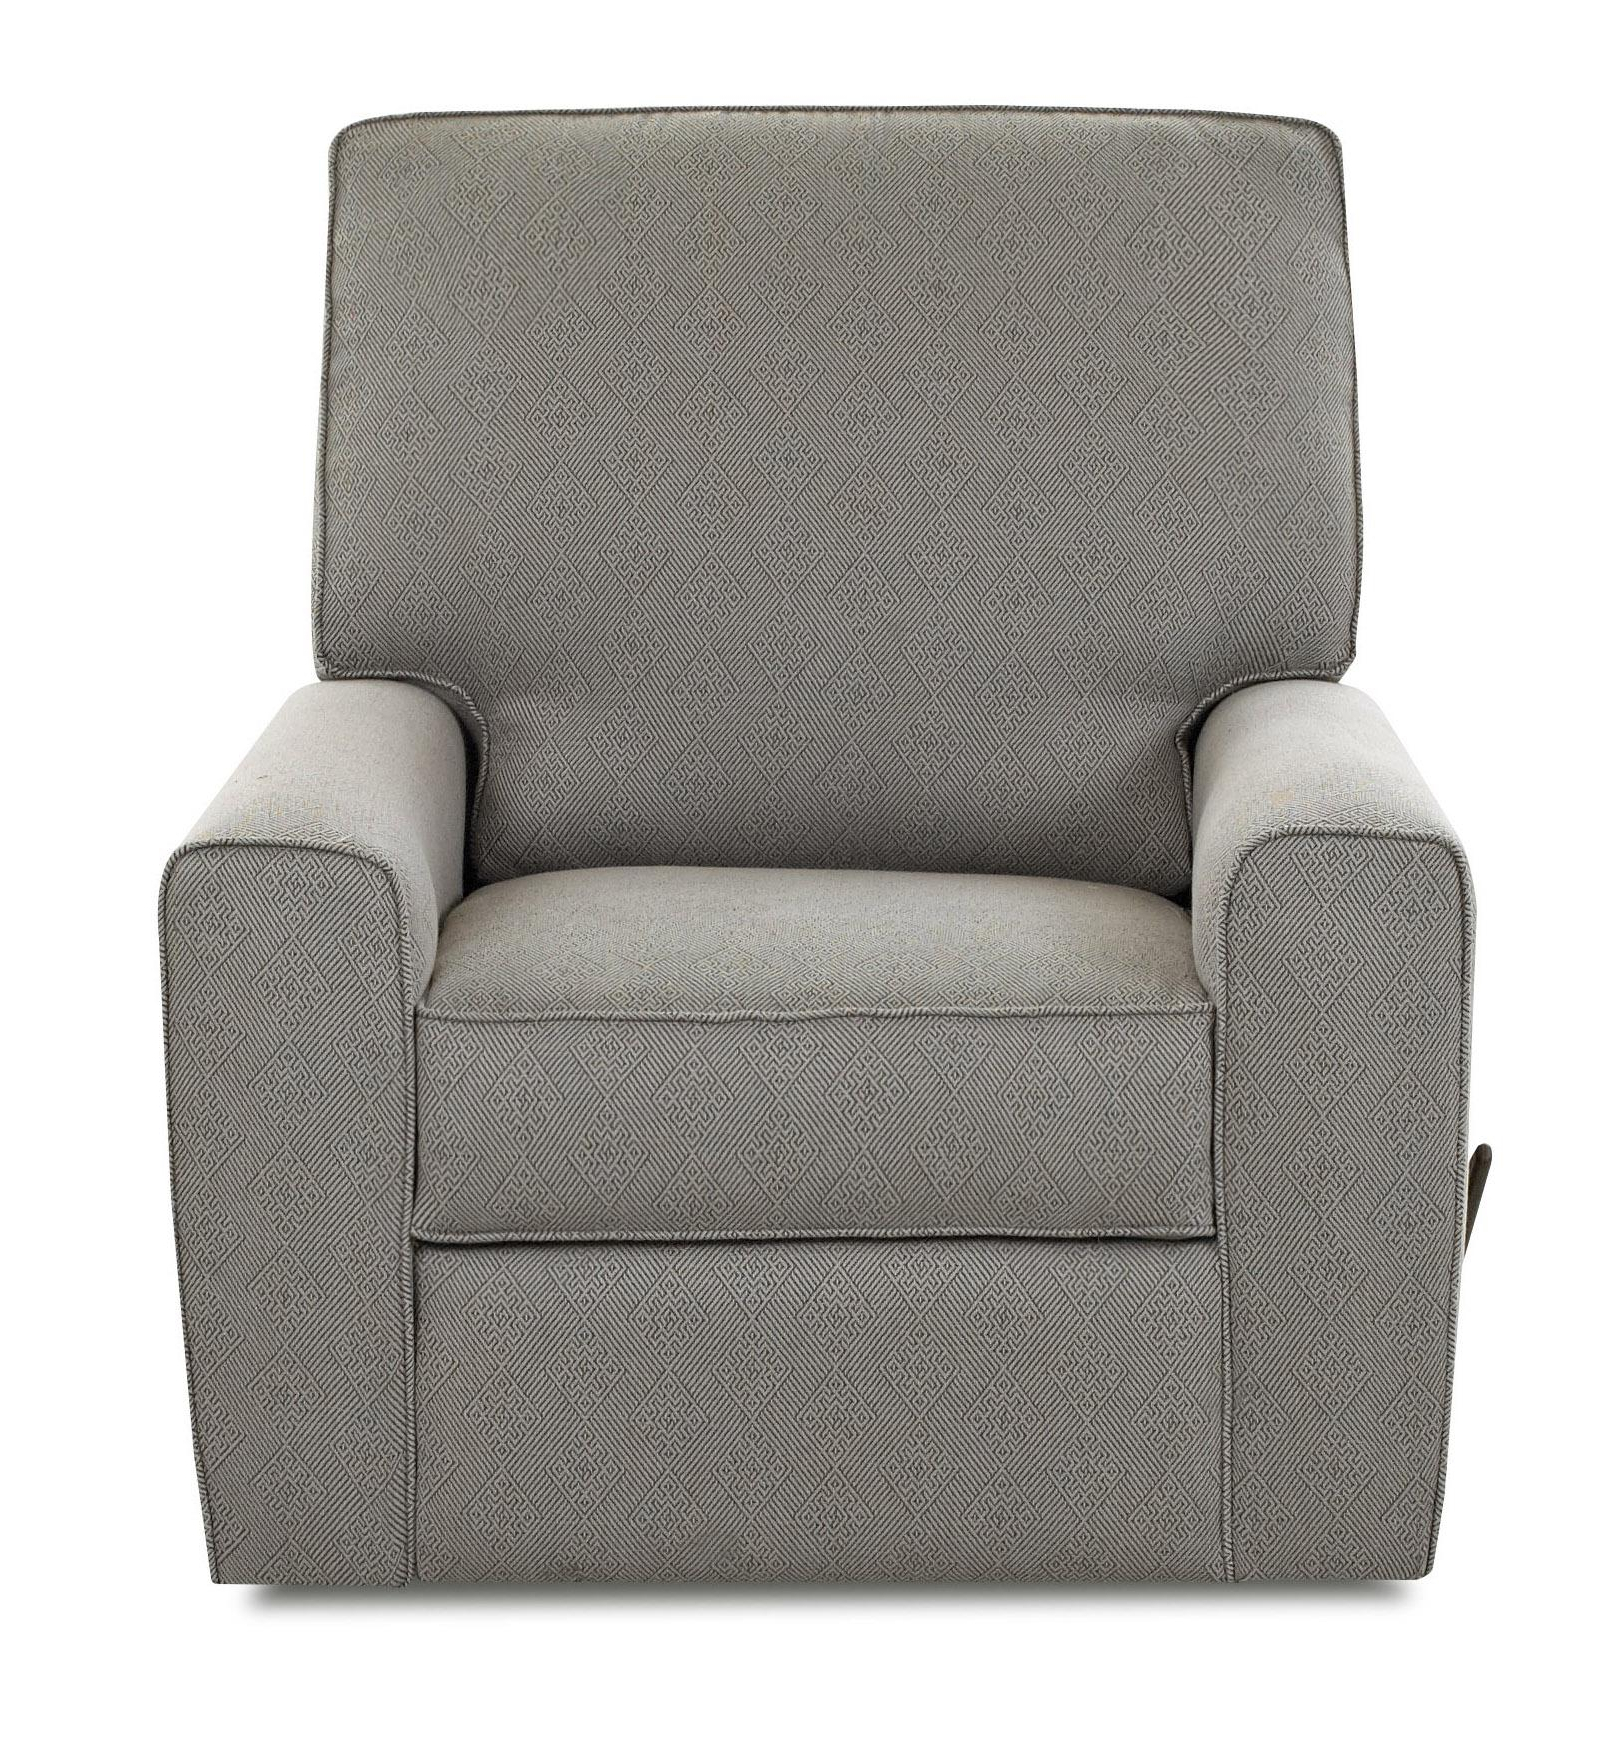 Most Recent Klaussner Hannah Transitional Swivel Gliding Reclining Chair With Throughout Bailey Roll Arm Skirted Swivel Gliders (View 14 of 20)